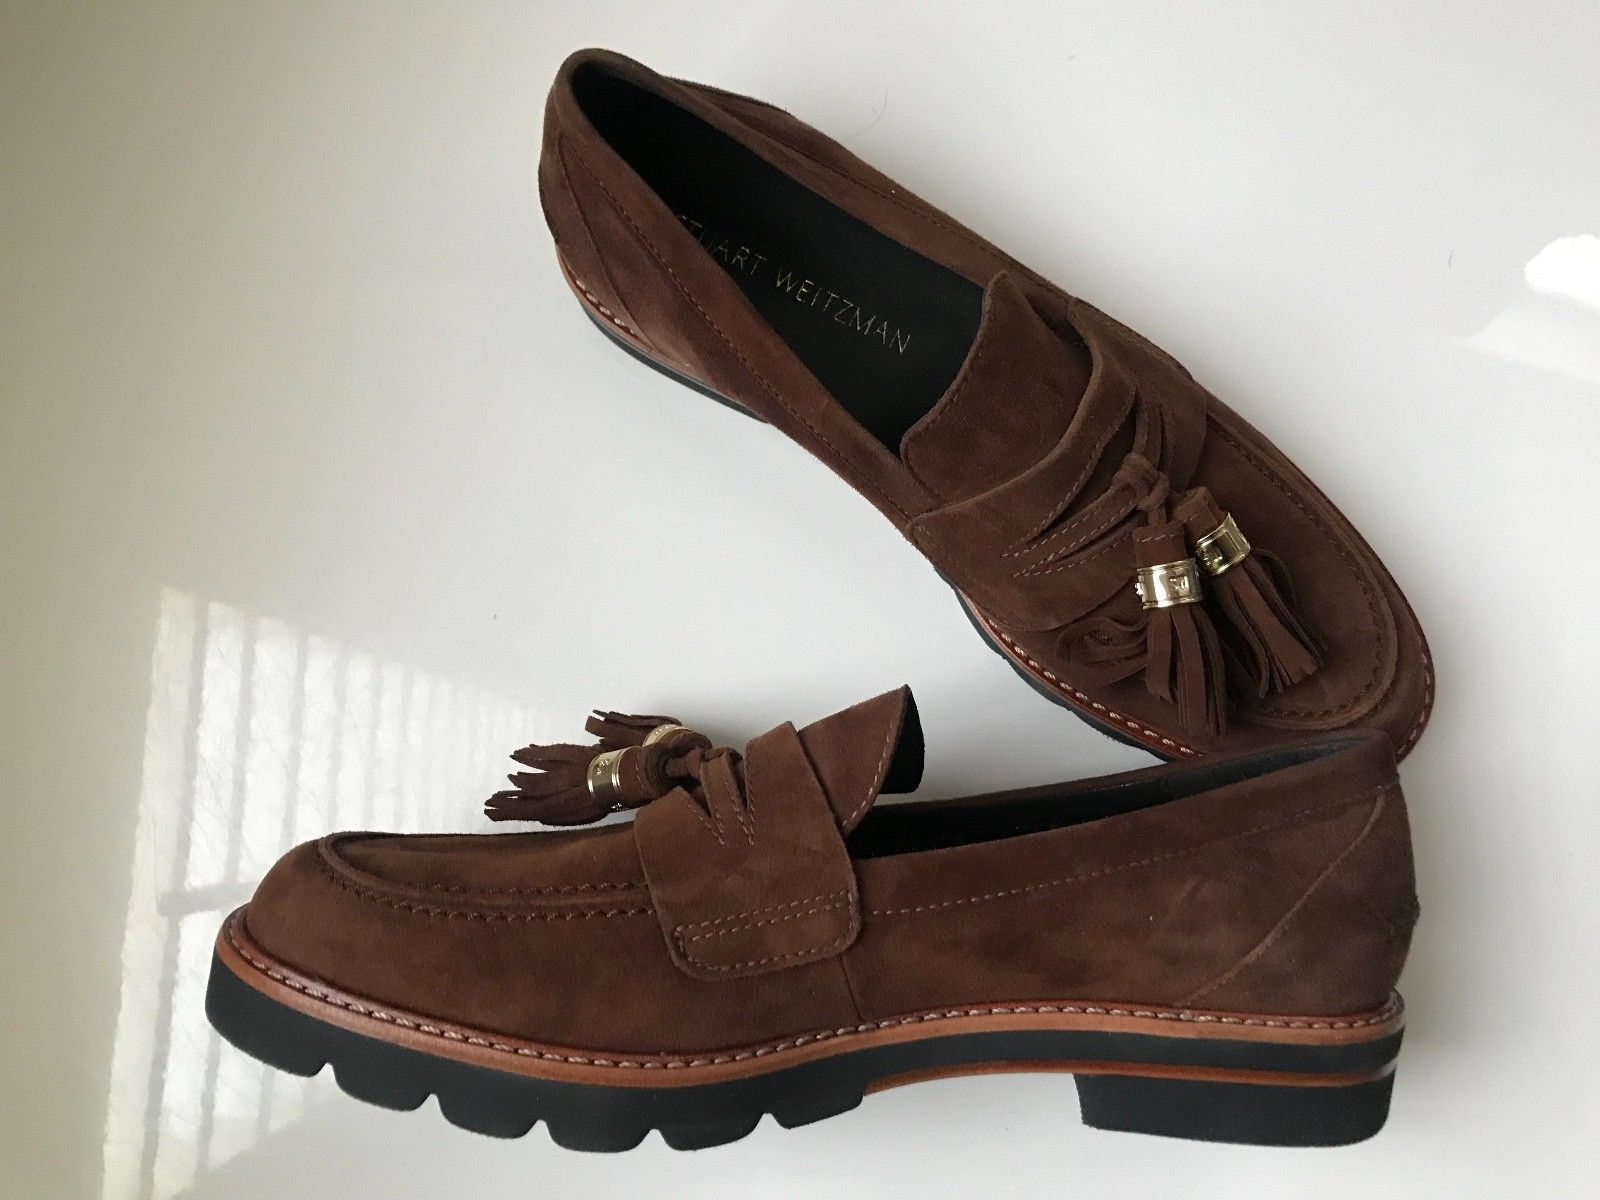 ab70da871d8 Stuart Weitzman Manila Loafer In Brown Suede and 50 similar items. S l1600